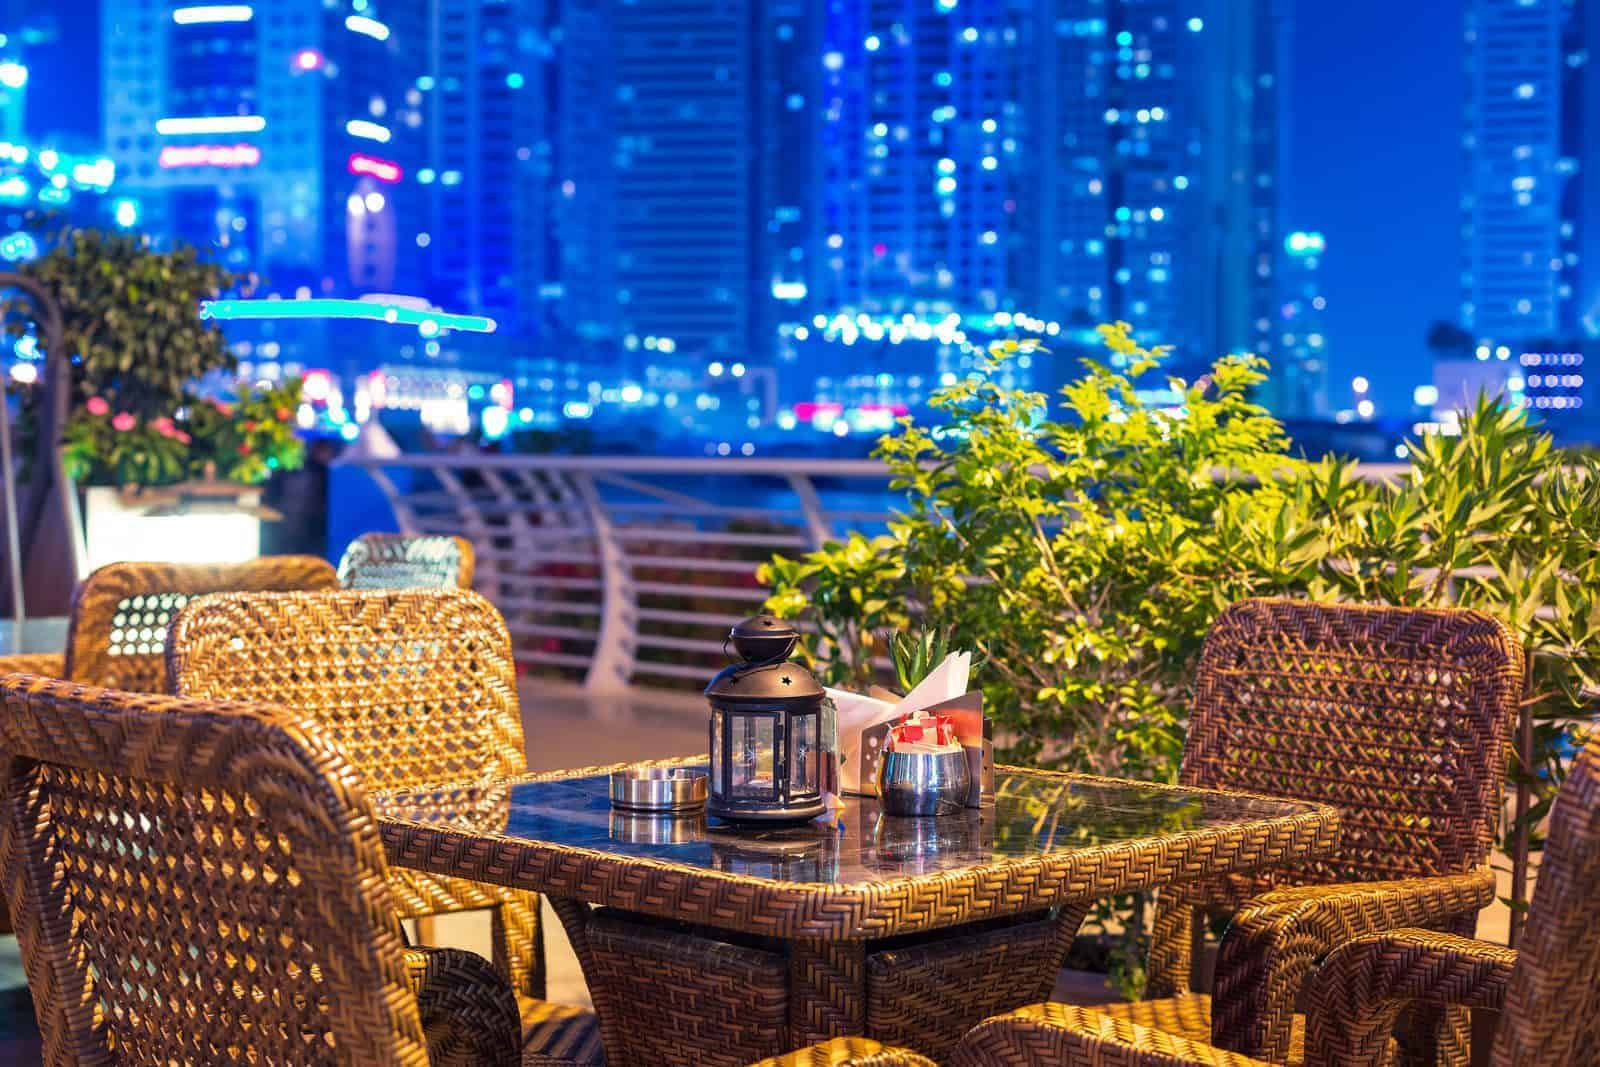 Dubai offers amazing dining out experience